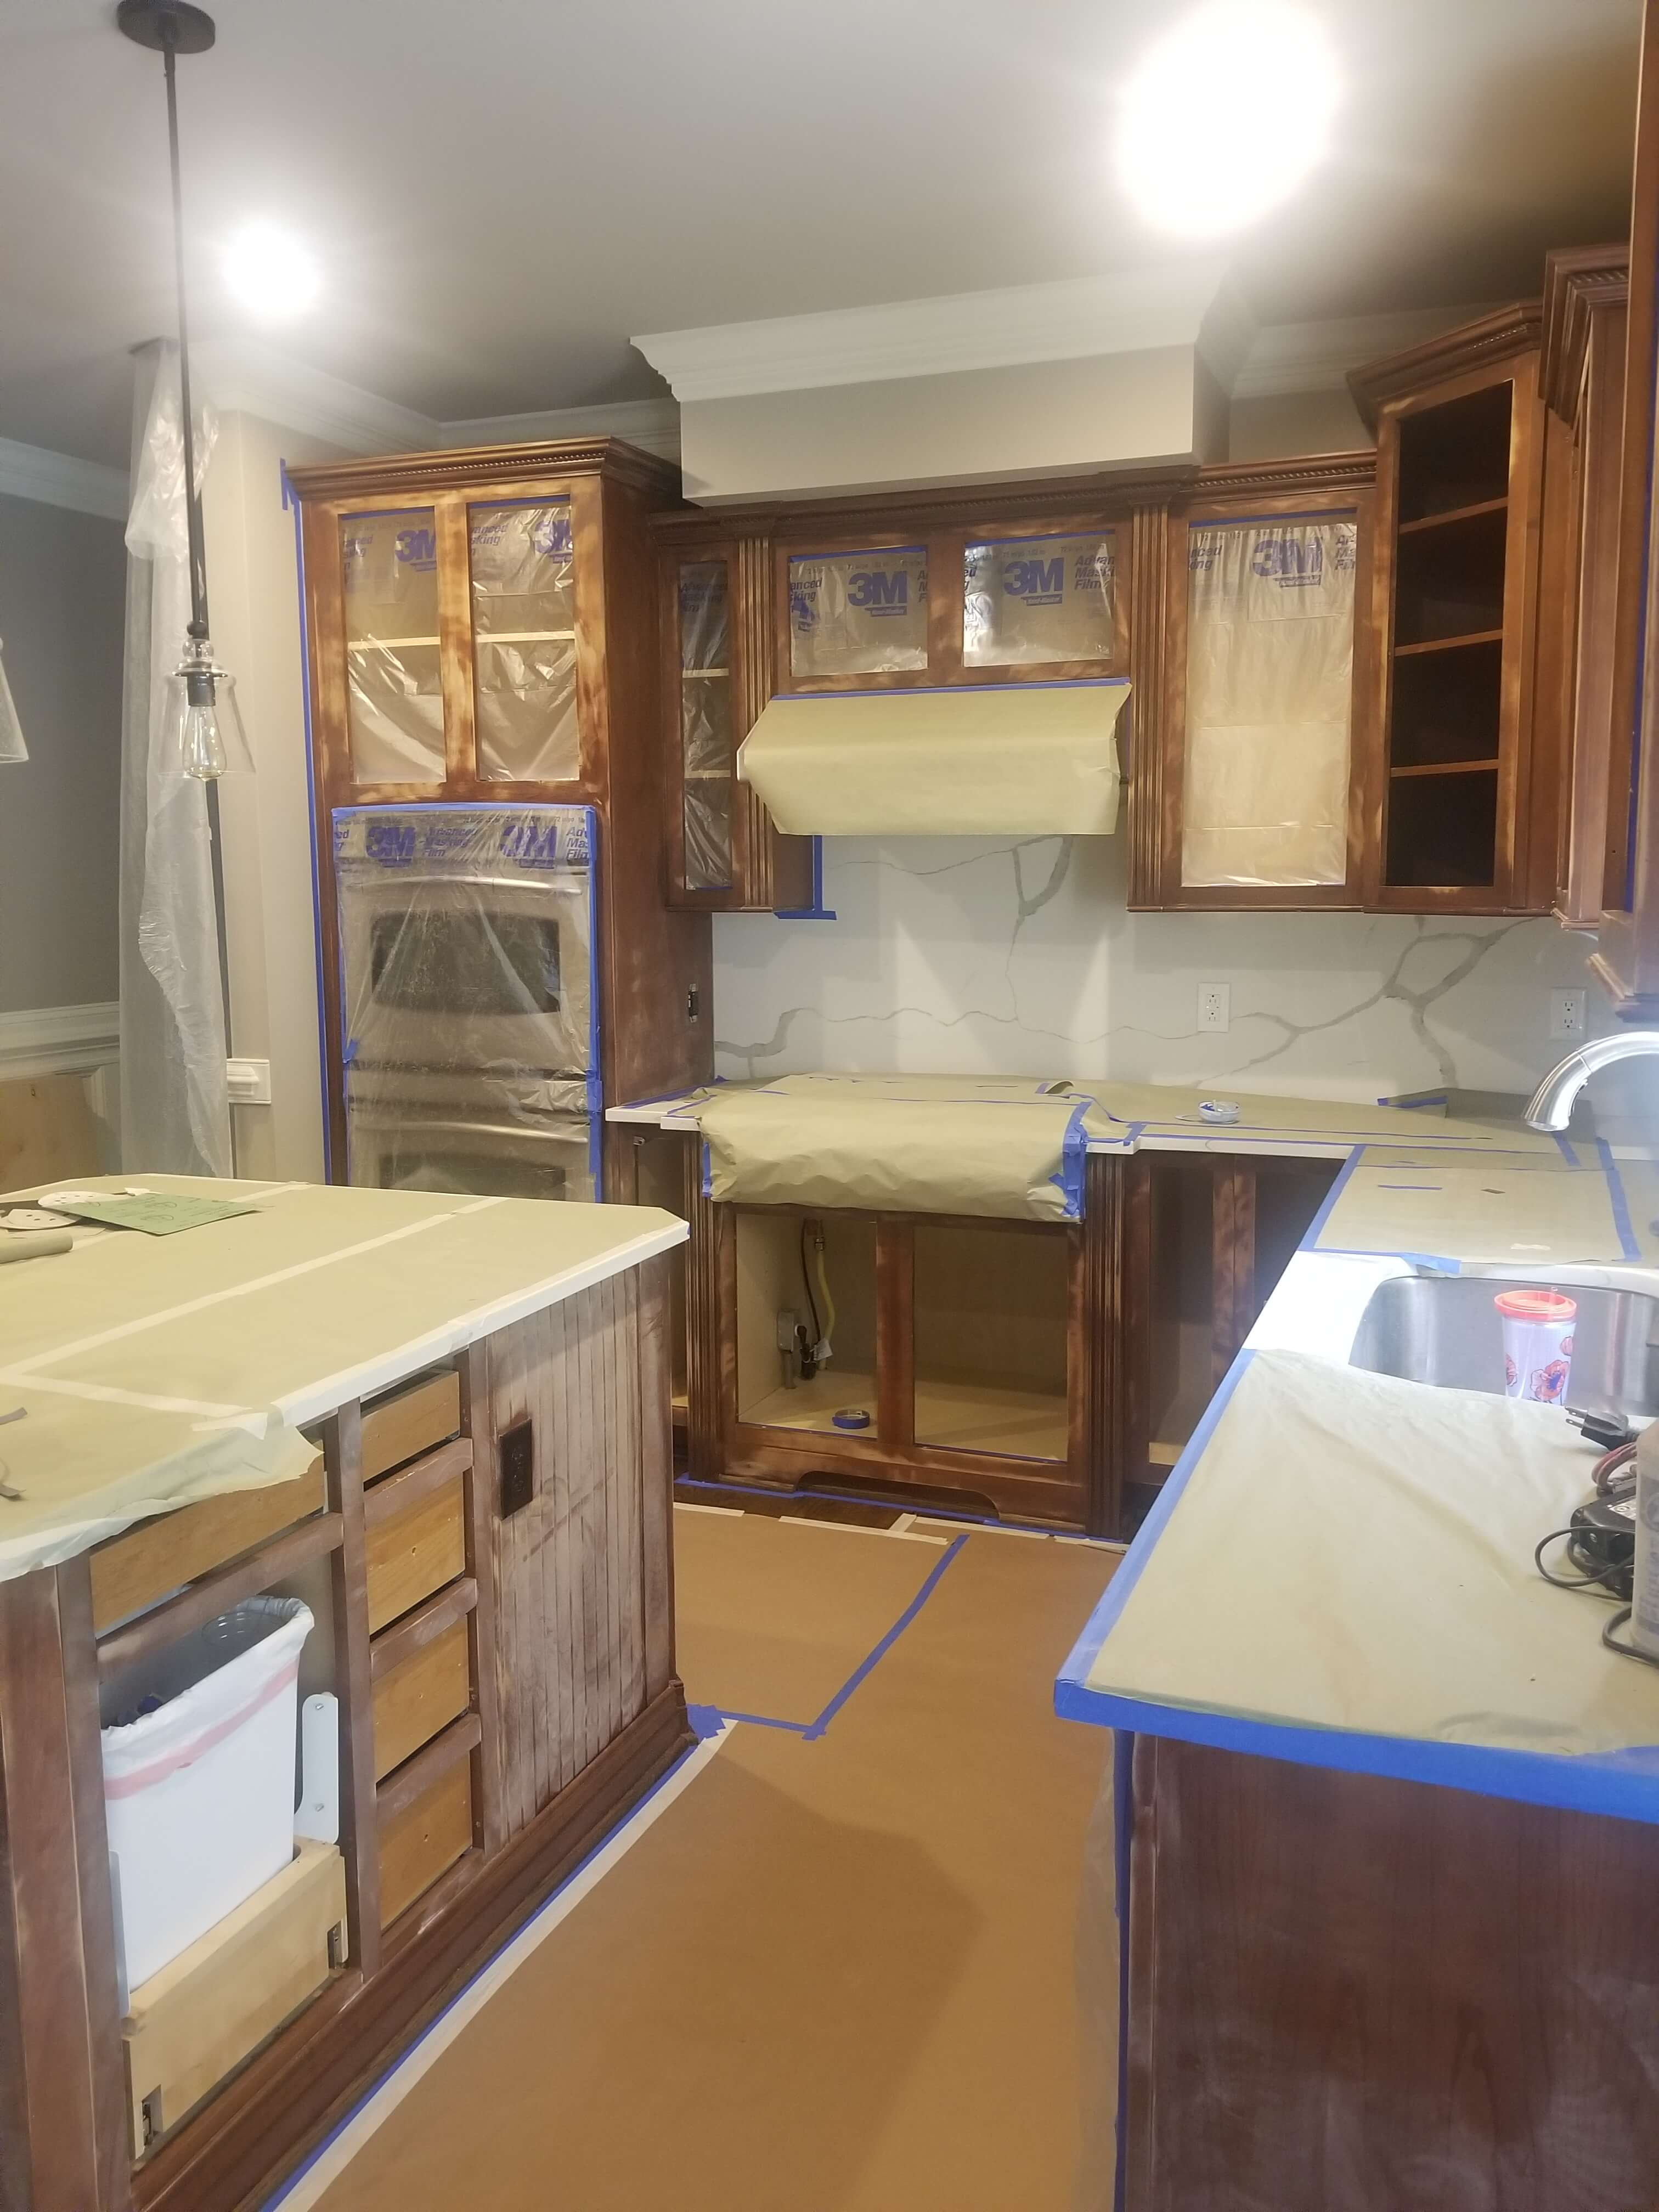 Refinish Cabinets Briar Creek June